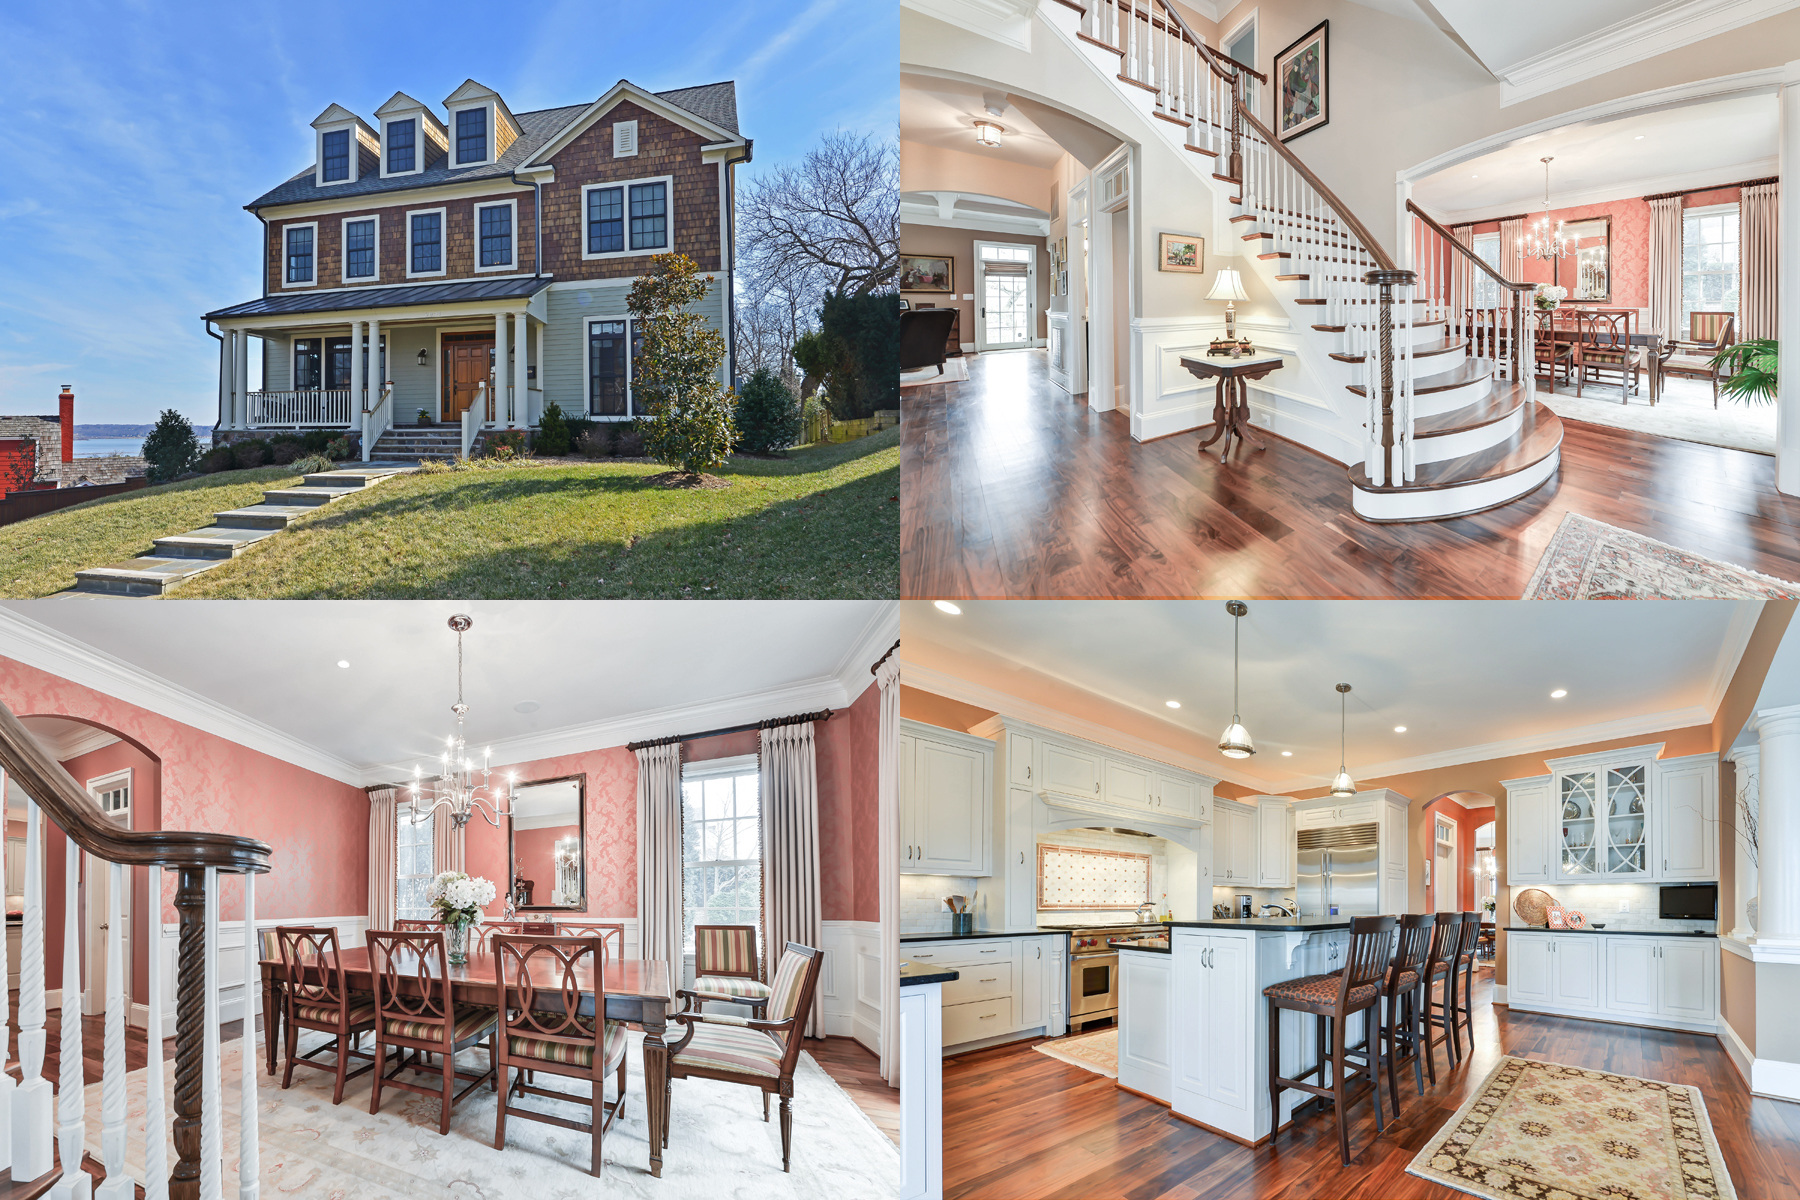 Single Family Home for Sale at Belle Haven 6041 Edgewood Terr Alexandria, Virginia 22307 United States